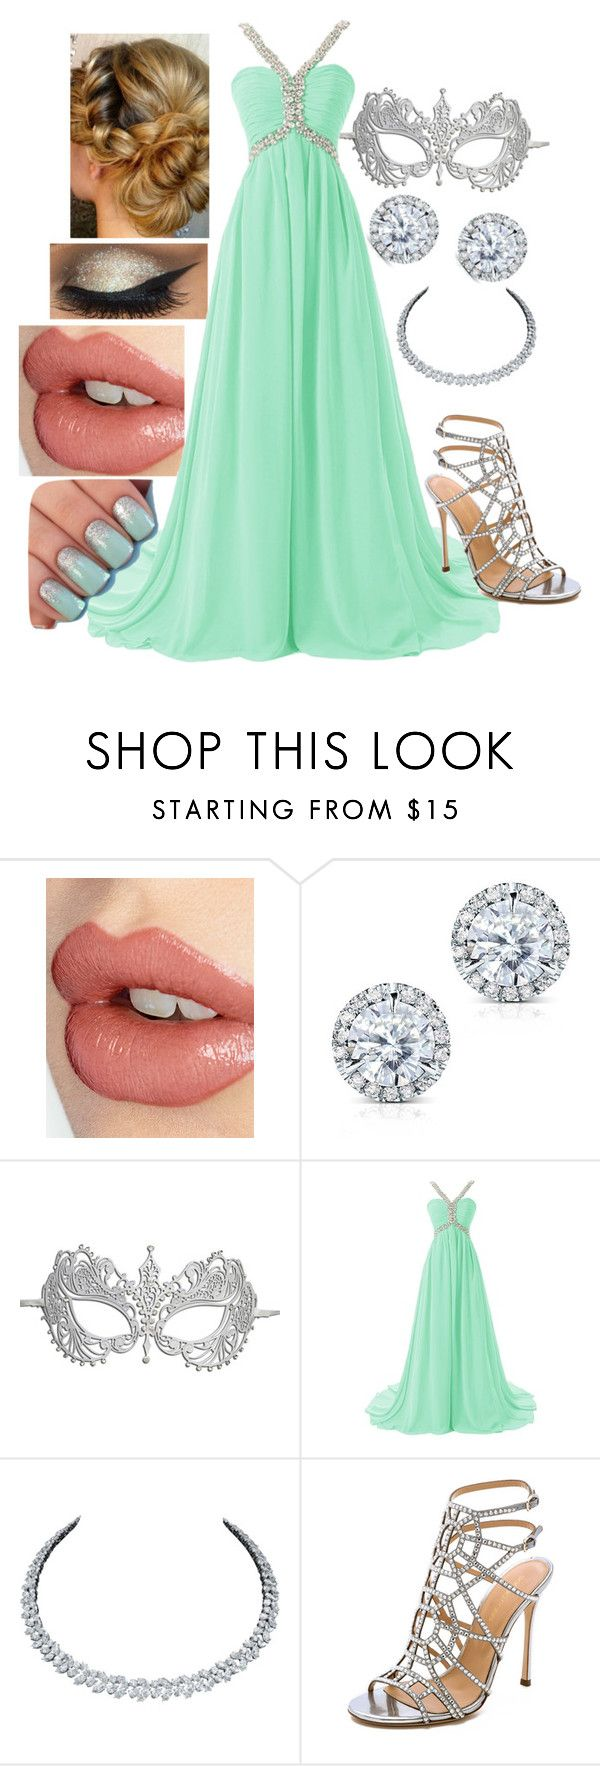 """Masquerade (#2)"" by loovemuffin ❤ liked on Polyvore featuring Charlotte Tilbury, Kobelli, Masquerade, Harry Winston, Sergio Rossi, cute, formal, mint and mask"